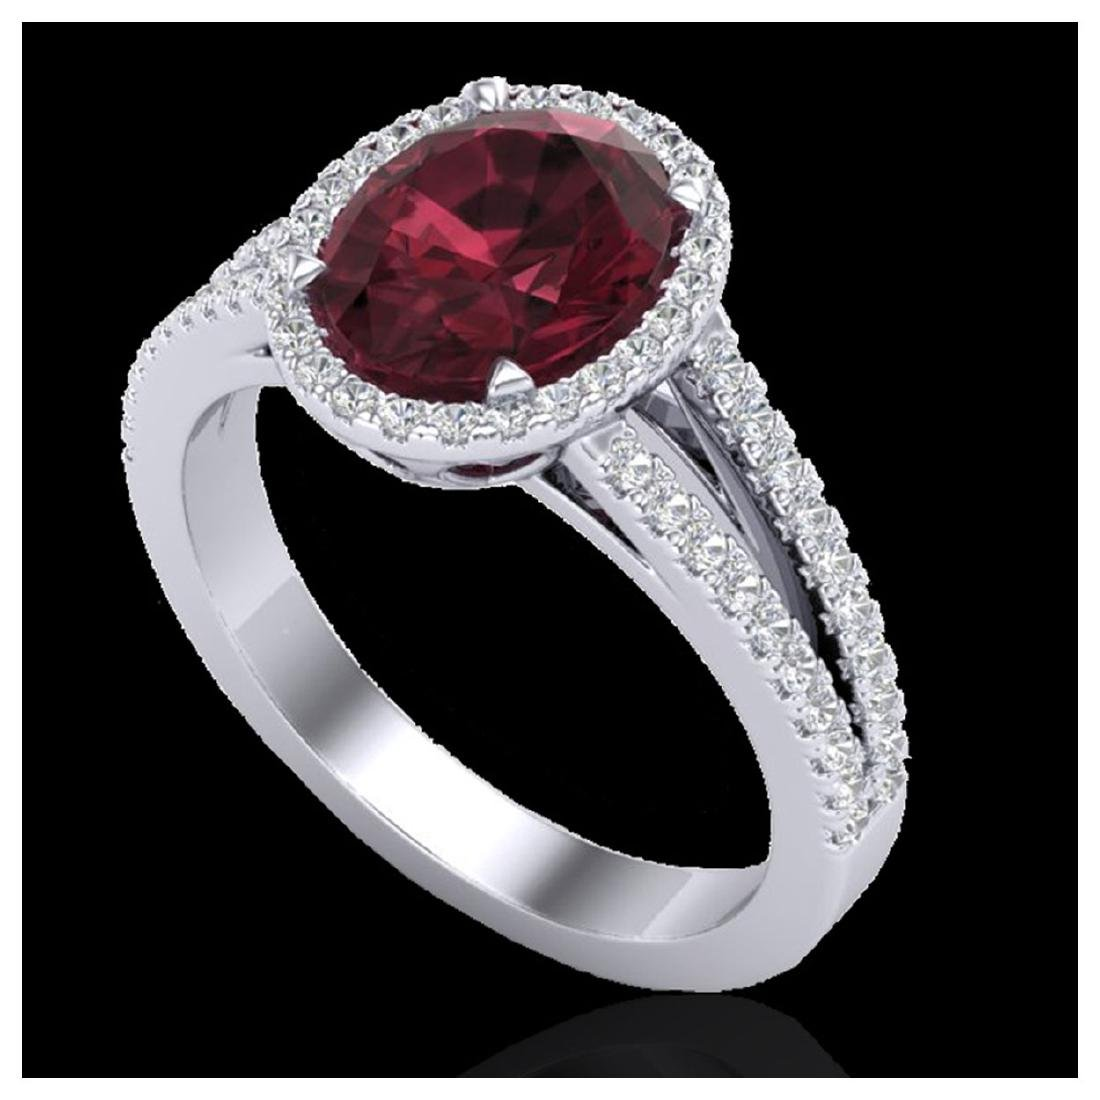 3 ctw Garnet & Micro VS/SI Diamond Halo Ring 18K White - 2